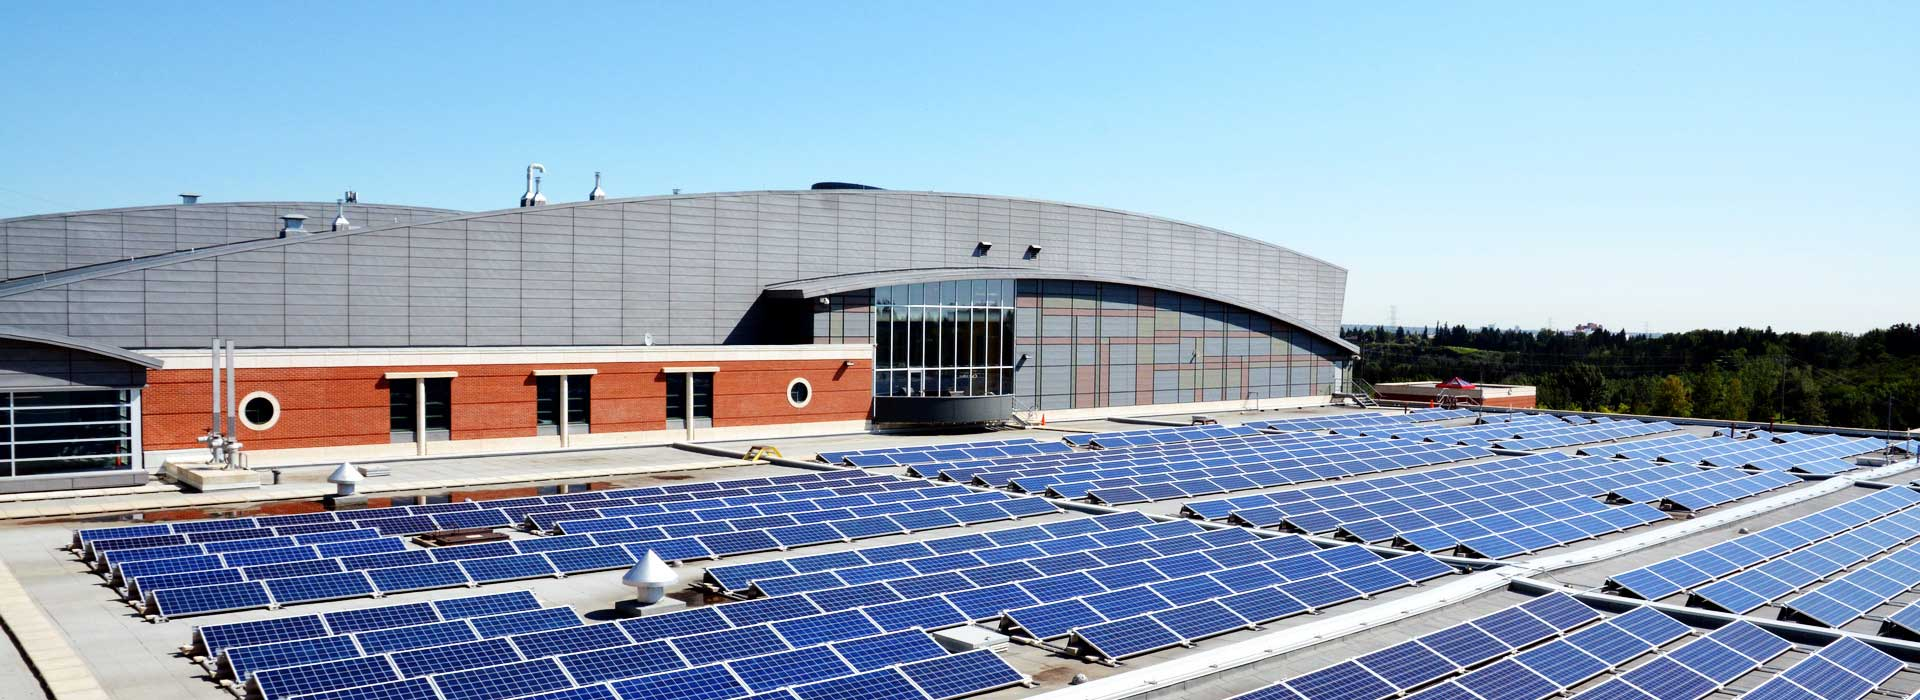 A building with solar panels